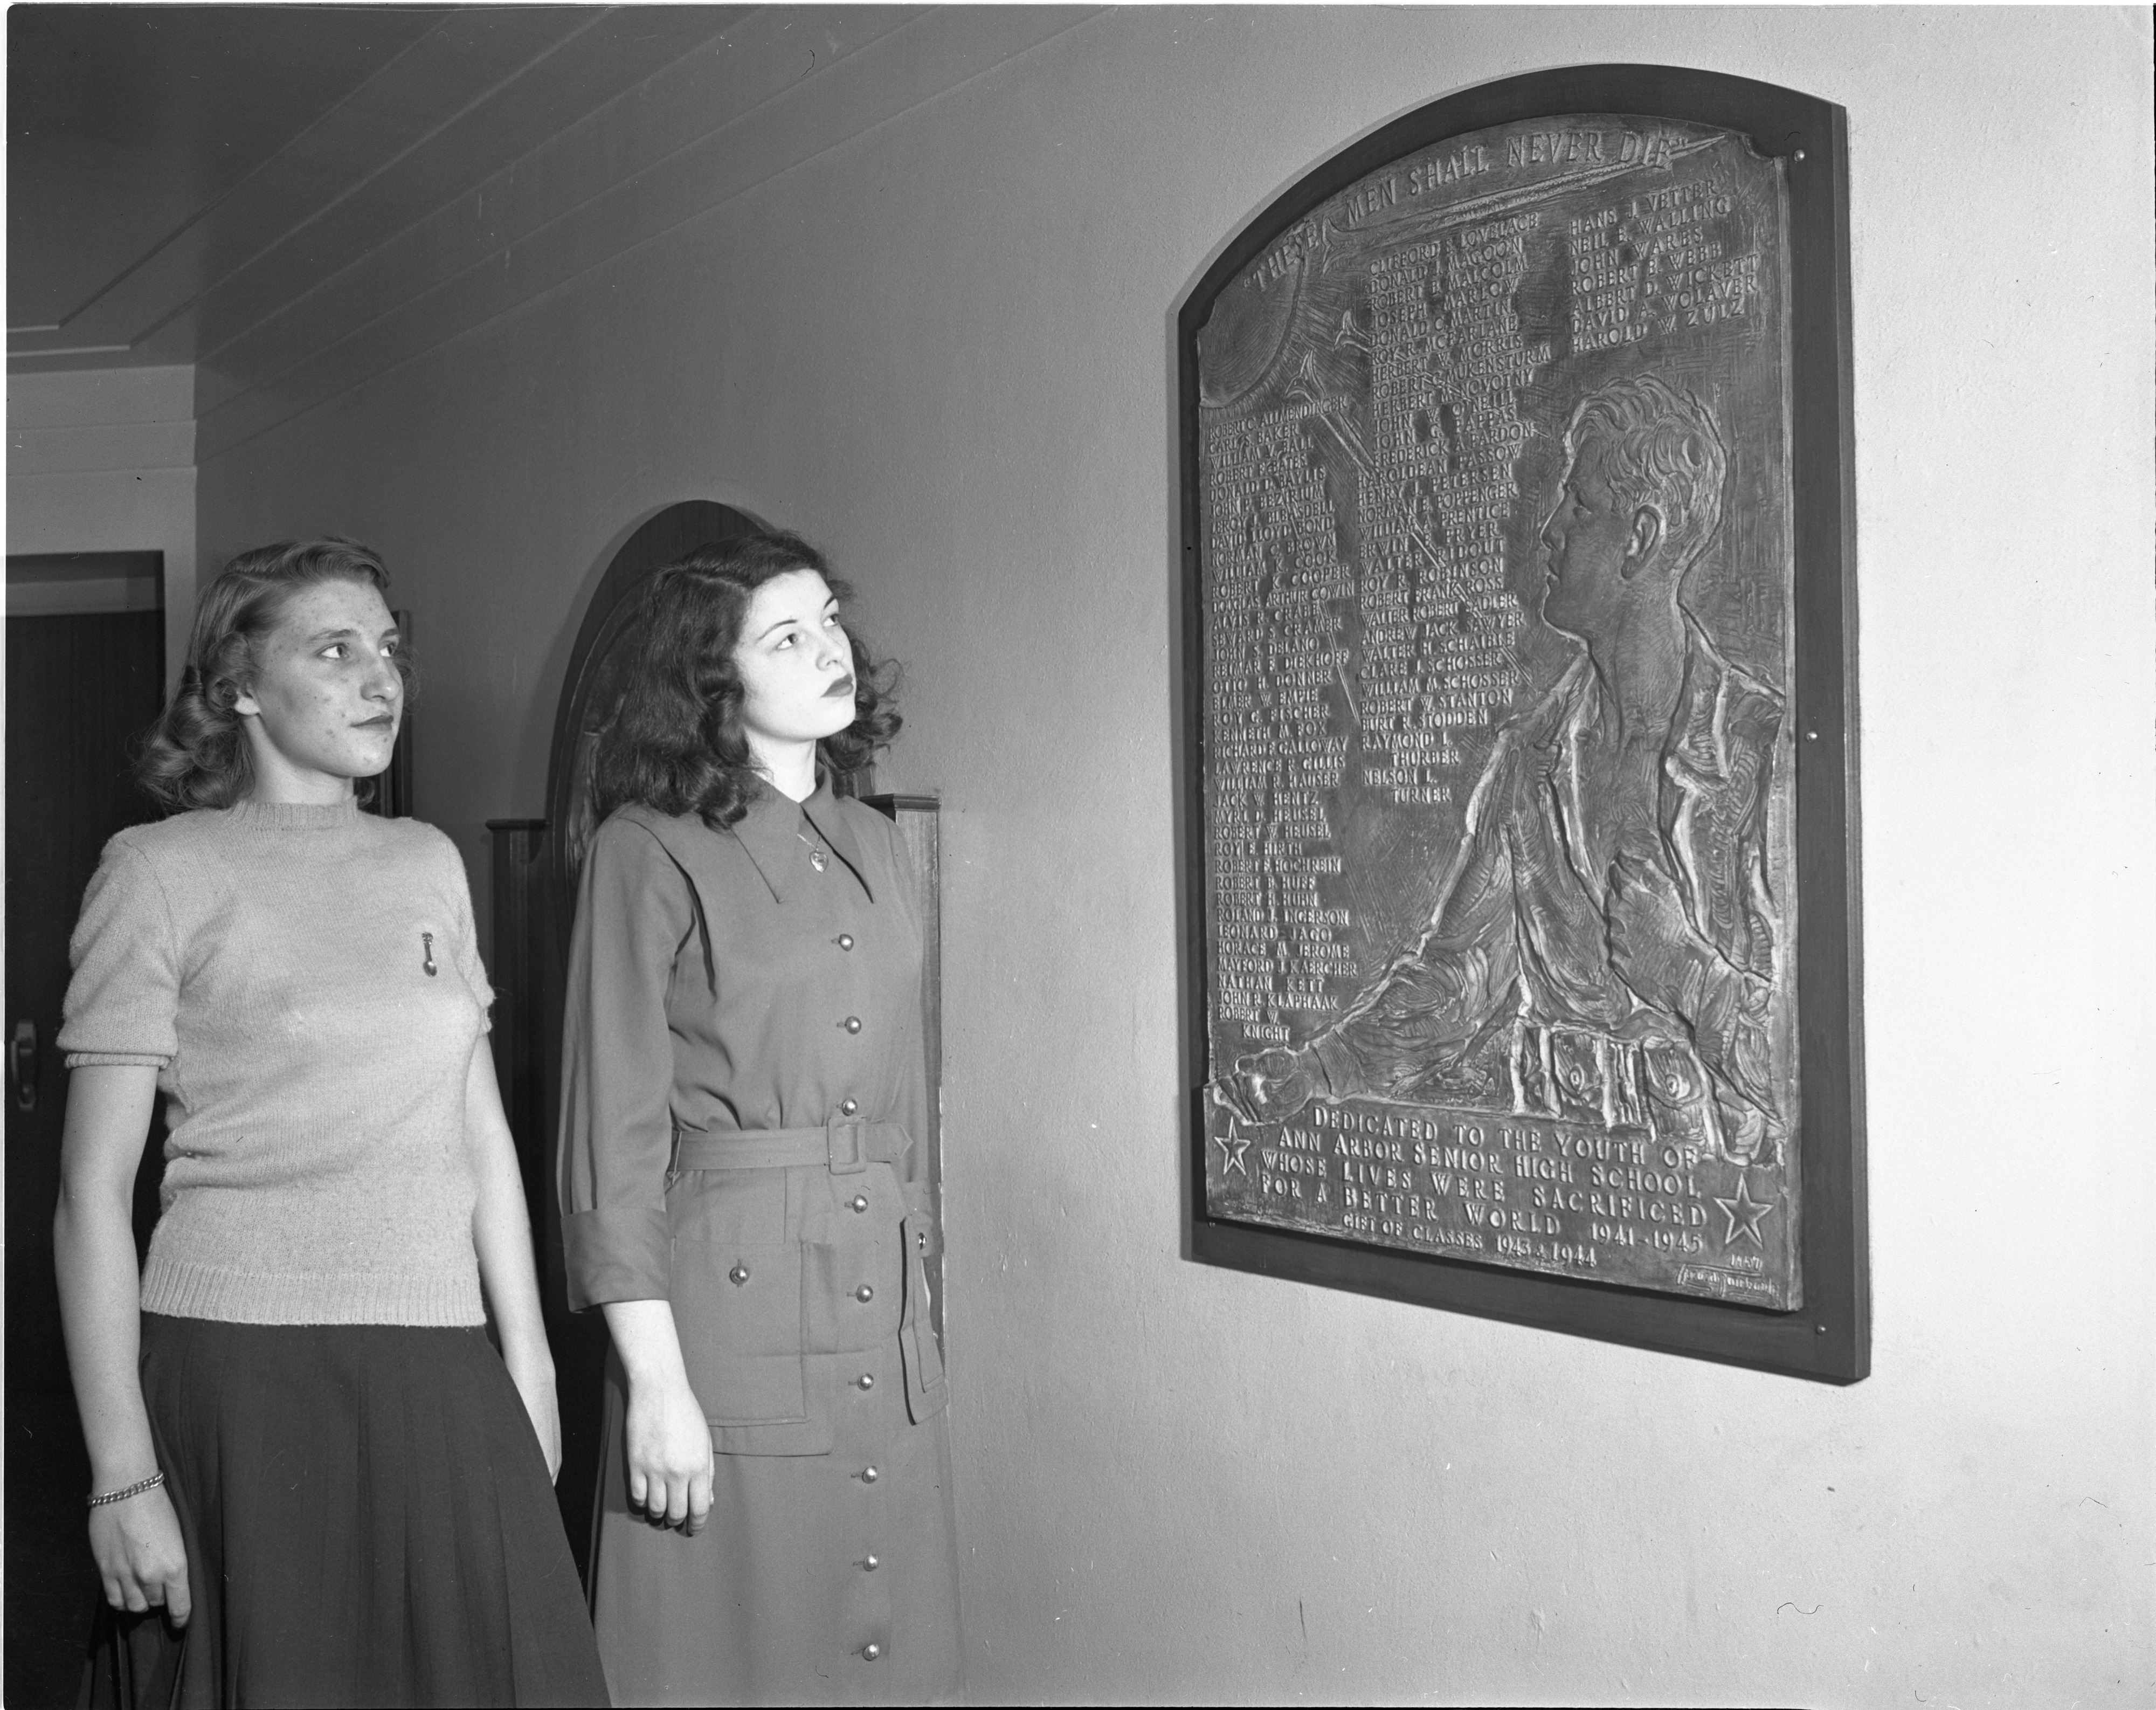 Plaque Honors Ann Arbor High School Students Who Died In World War II, January 1948 image